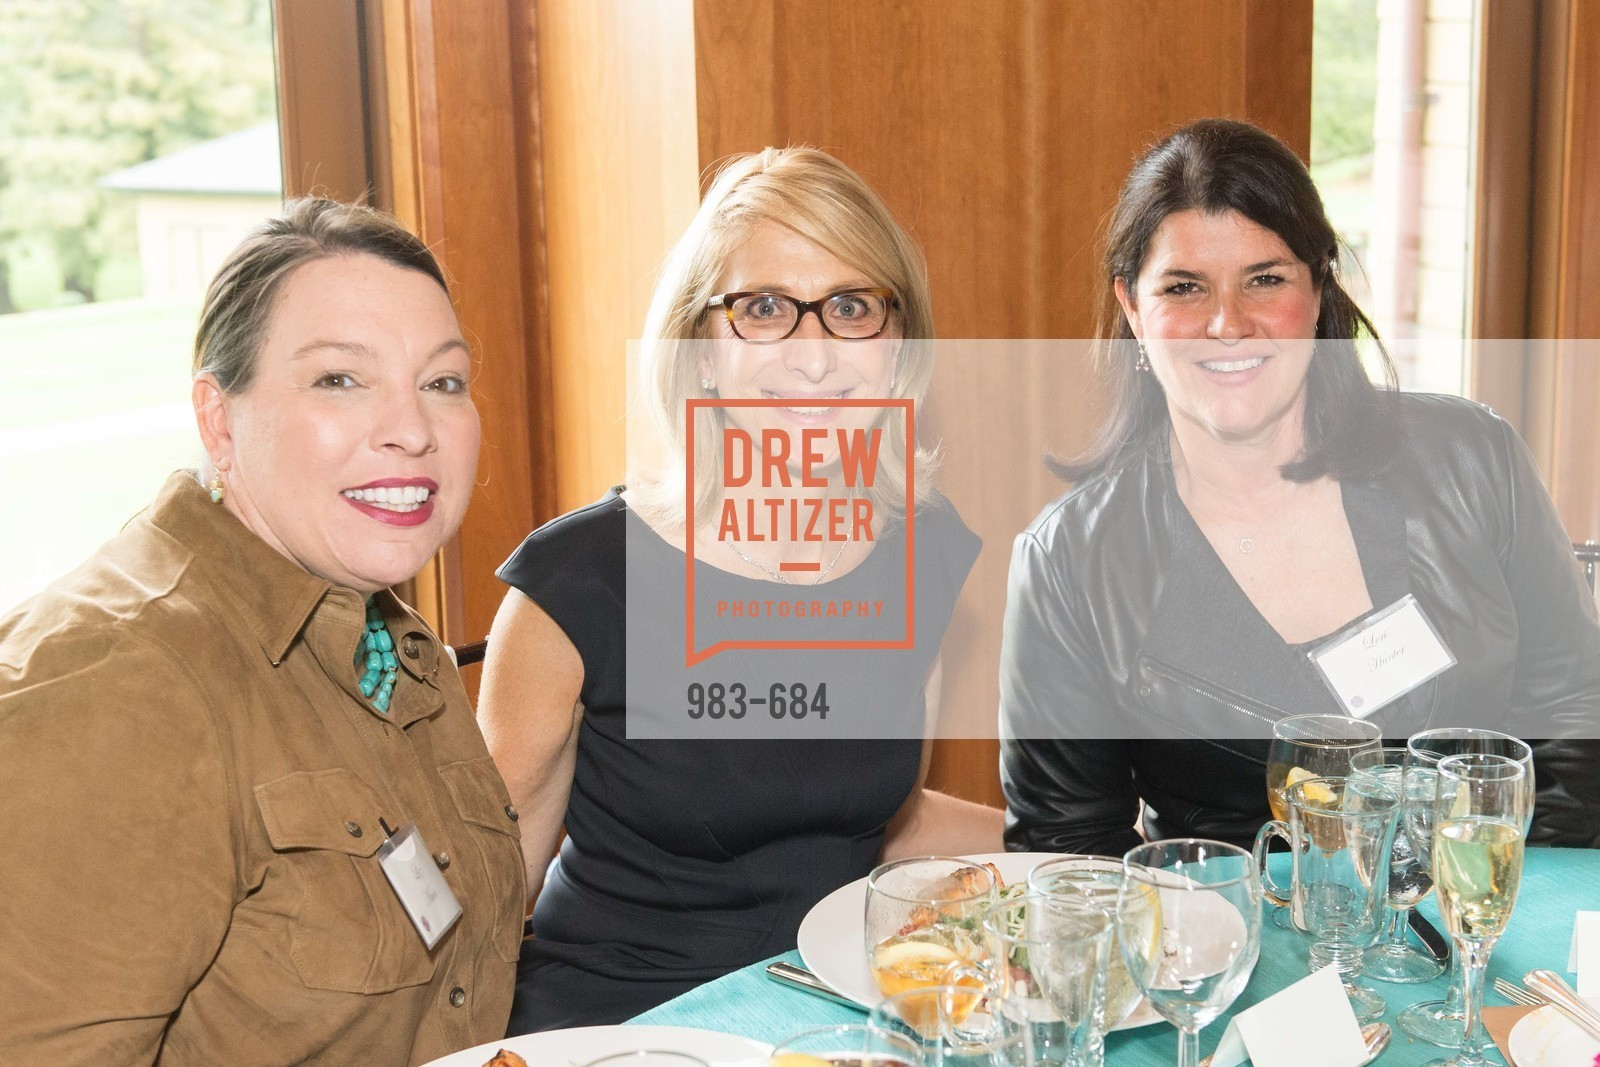 Liz Muir, Stephanie Harman, Lori Hunter, Under One Umbrella, Sharon Heights Golf and Country Club, January 13th, 2016,Drew Altizer, Drew Altizer Photography, full-service event agency, private events, San Francisco photographer, photographer California